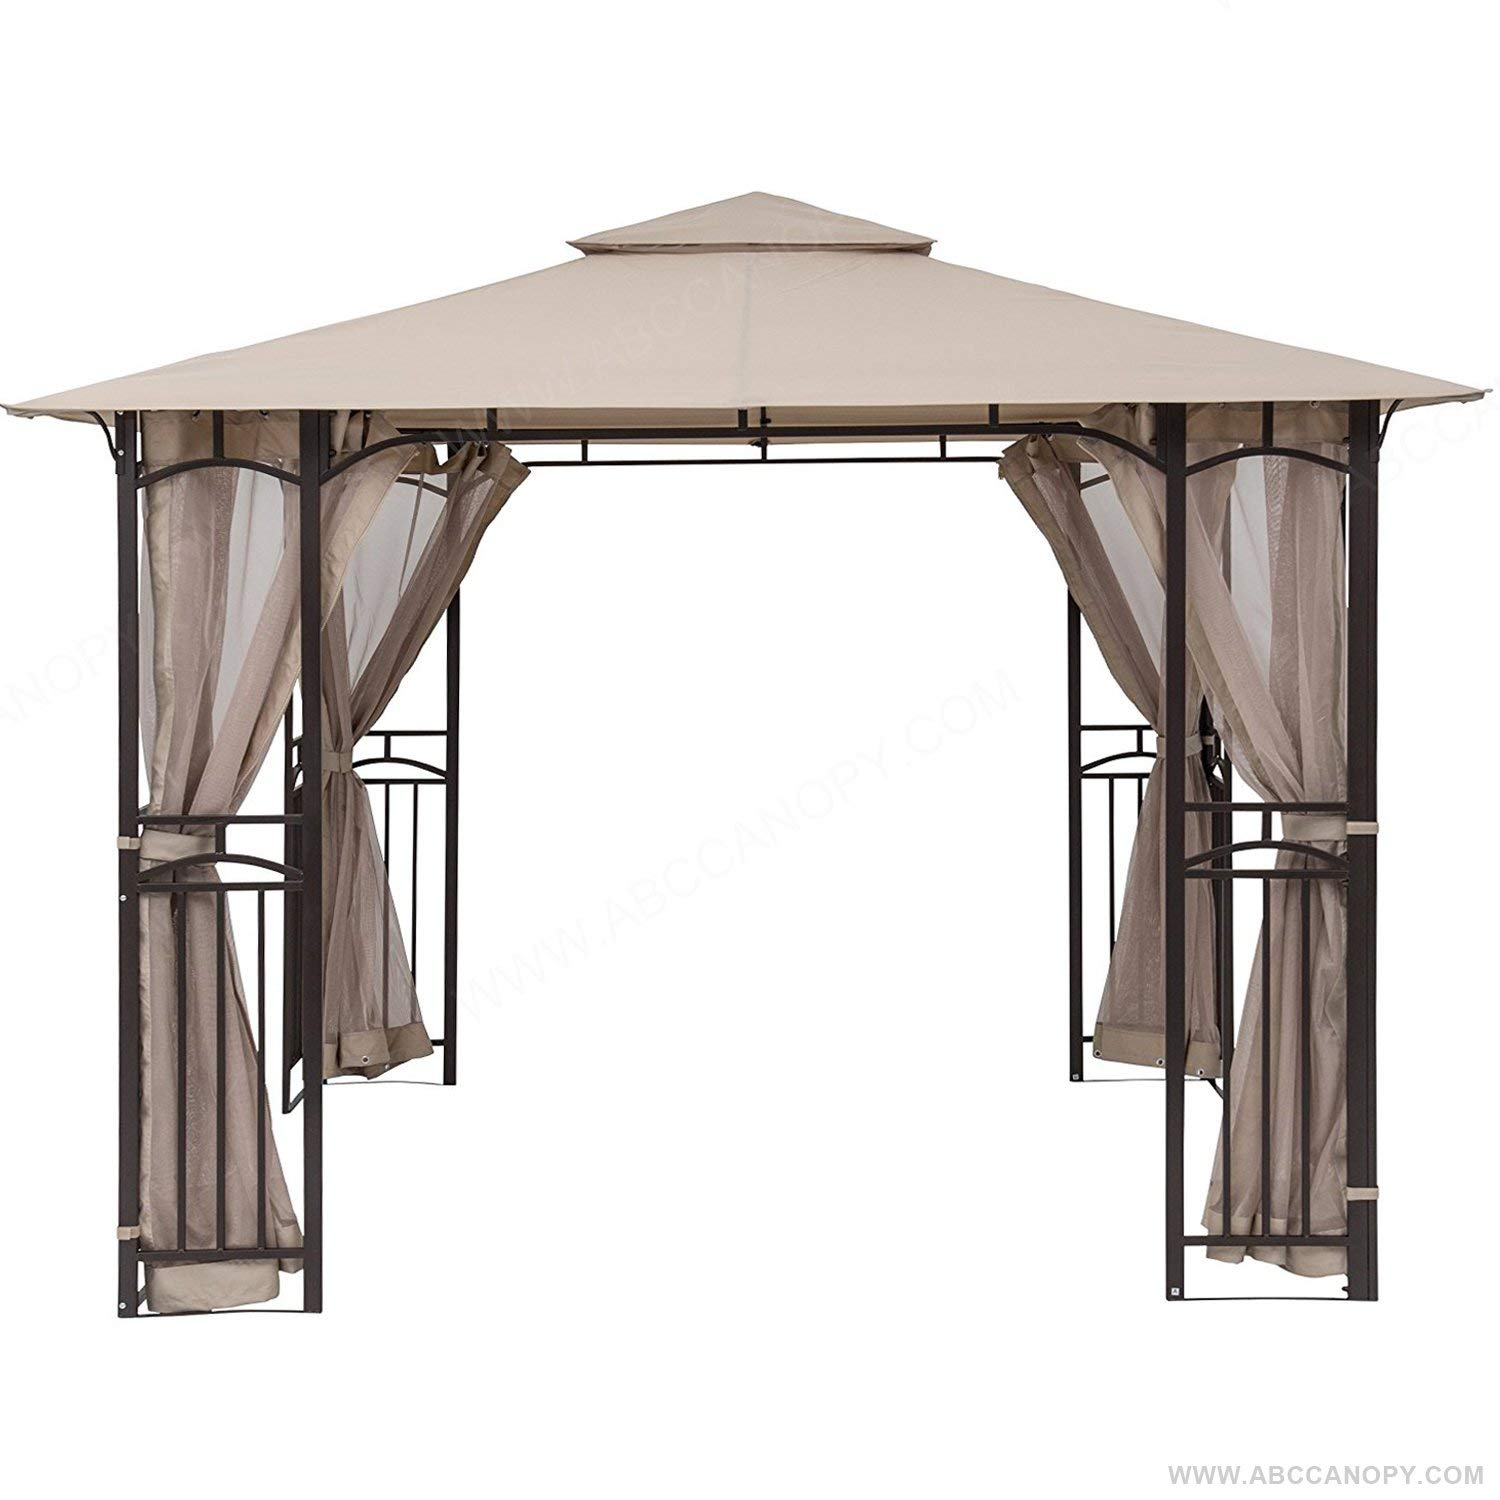 12x14 Canopy Find